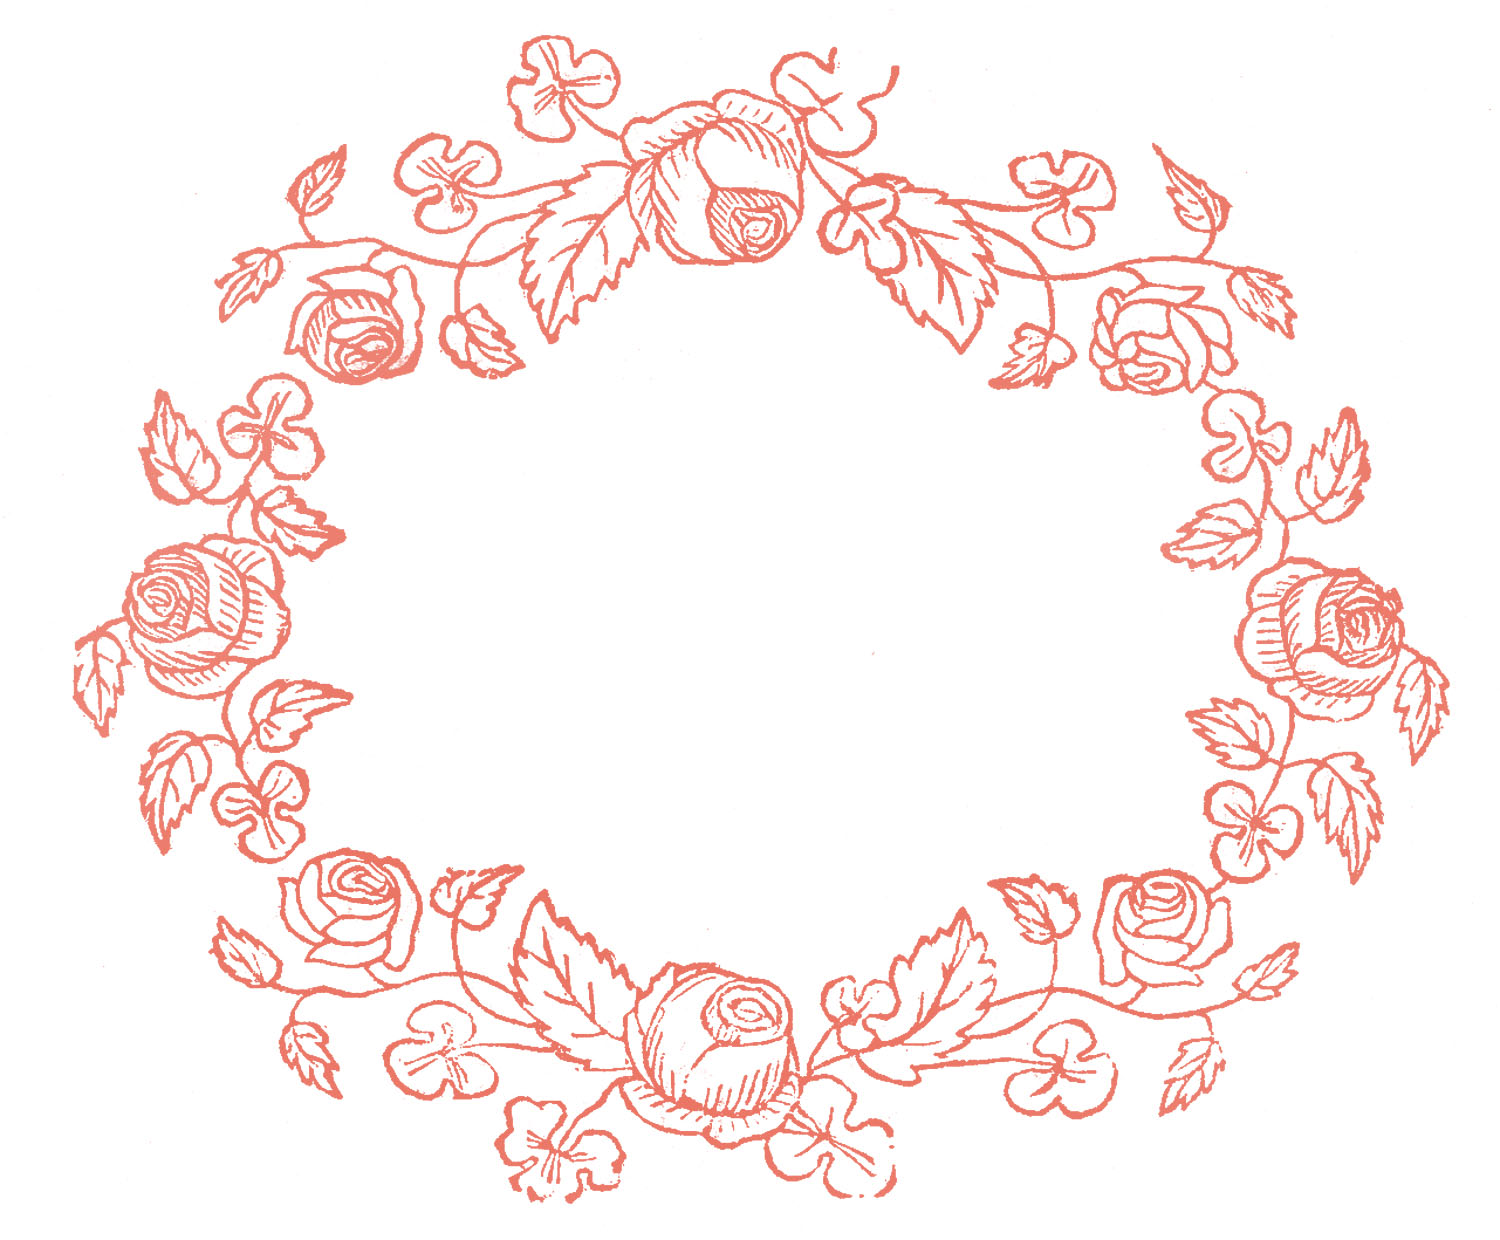 Embroidered rose patterns on pinterest embroidery